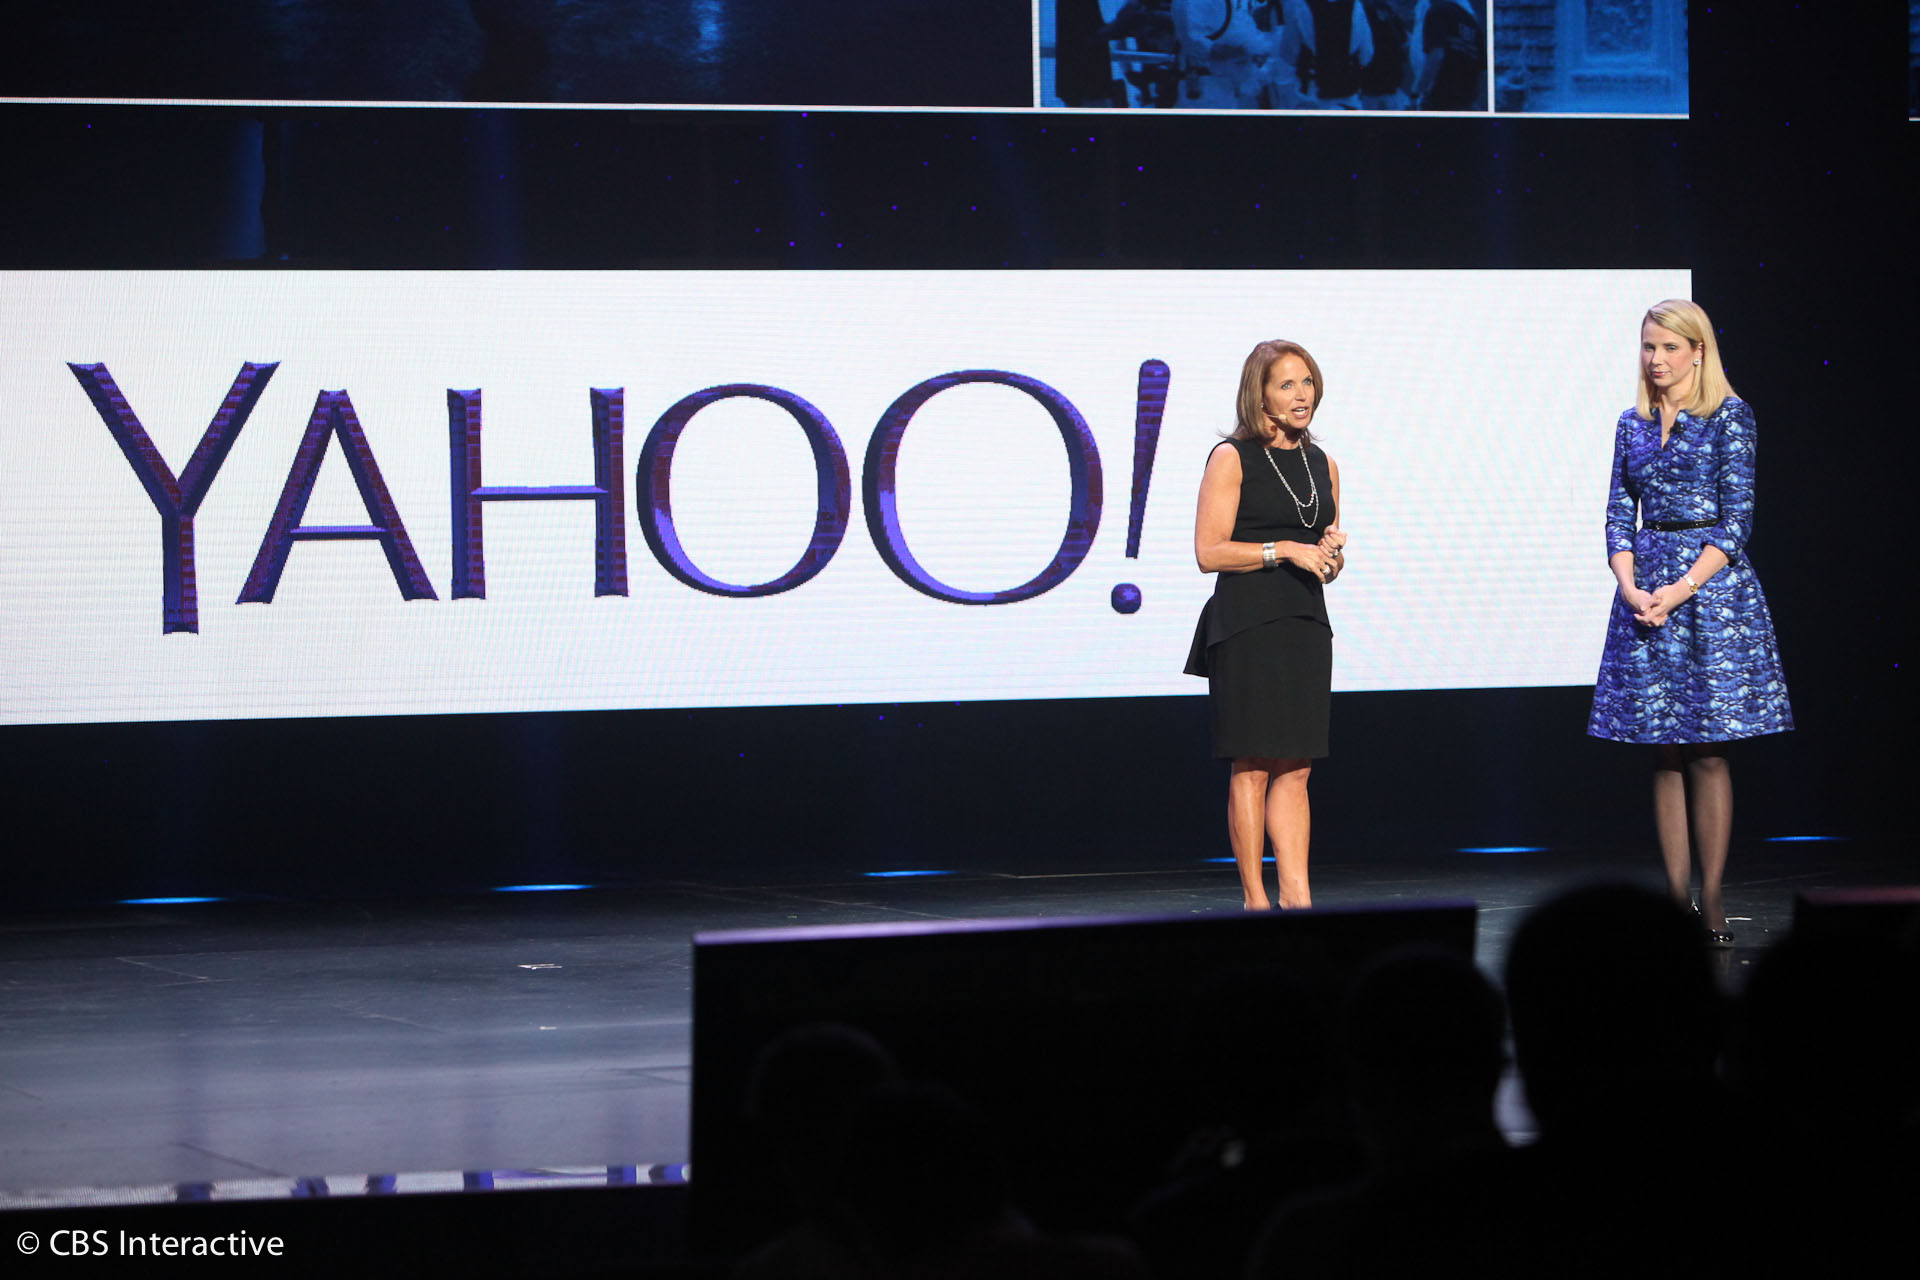 LAS VEGAS -- Yahoo CEO Marissa Mayer on Tuesday took the CES stage, where she announced several new news products, including a twice-daily summary of trending headlines called Yahoo News Digets, and digital magazines, starting with Yahoo Tech and Yahoo Food.</p>